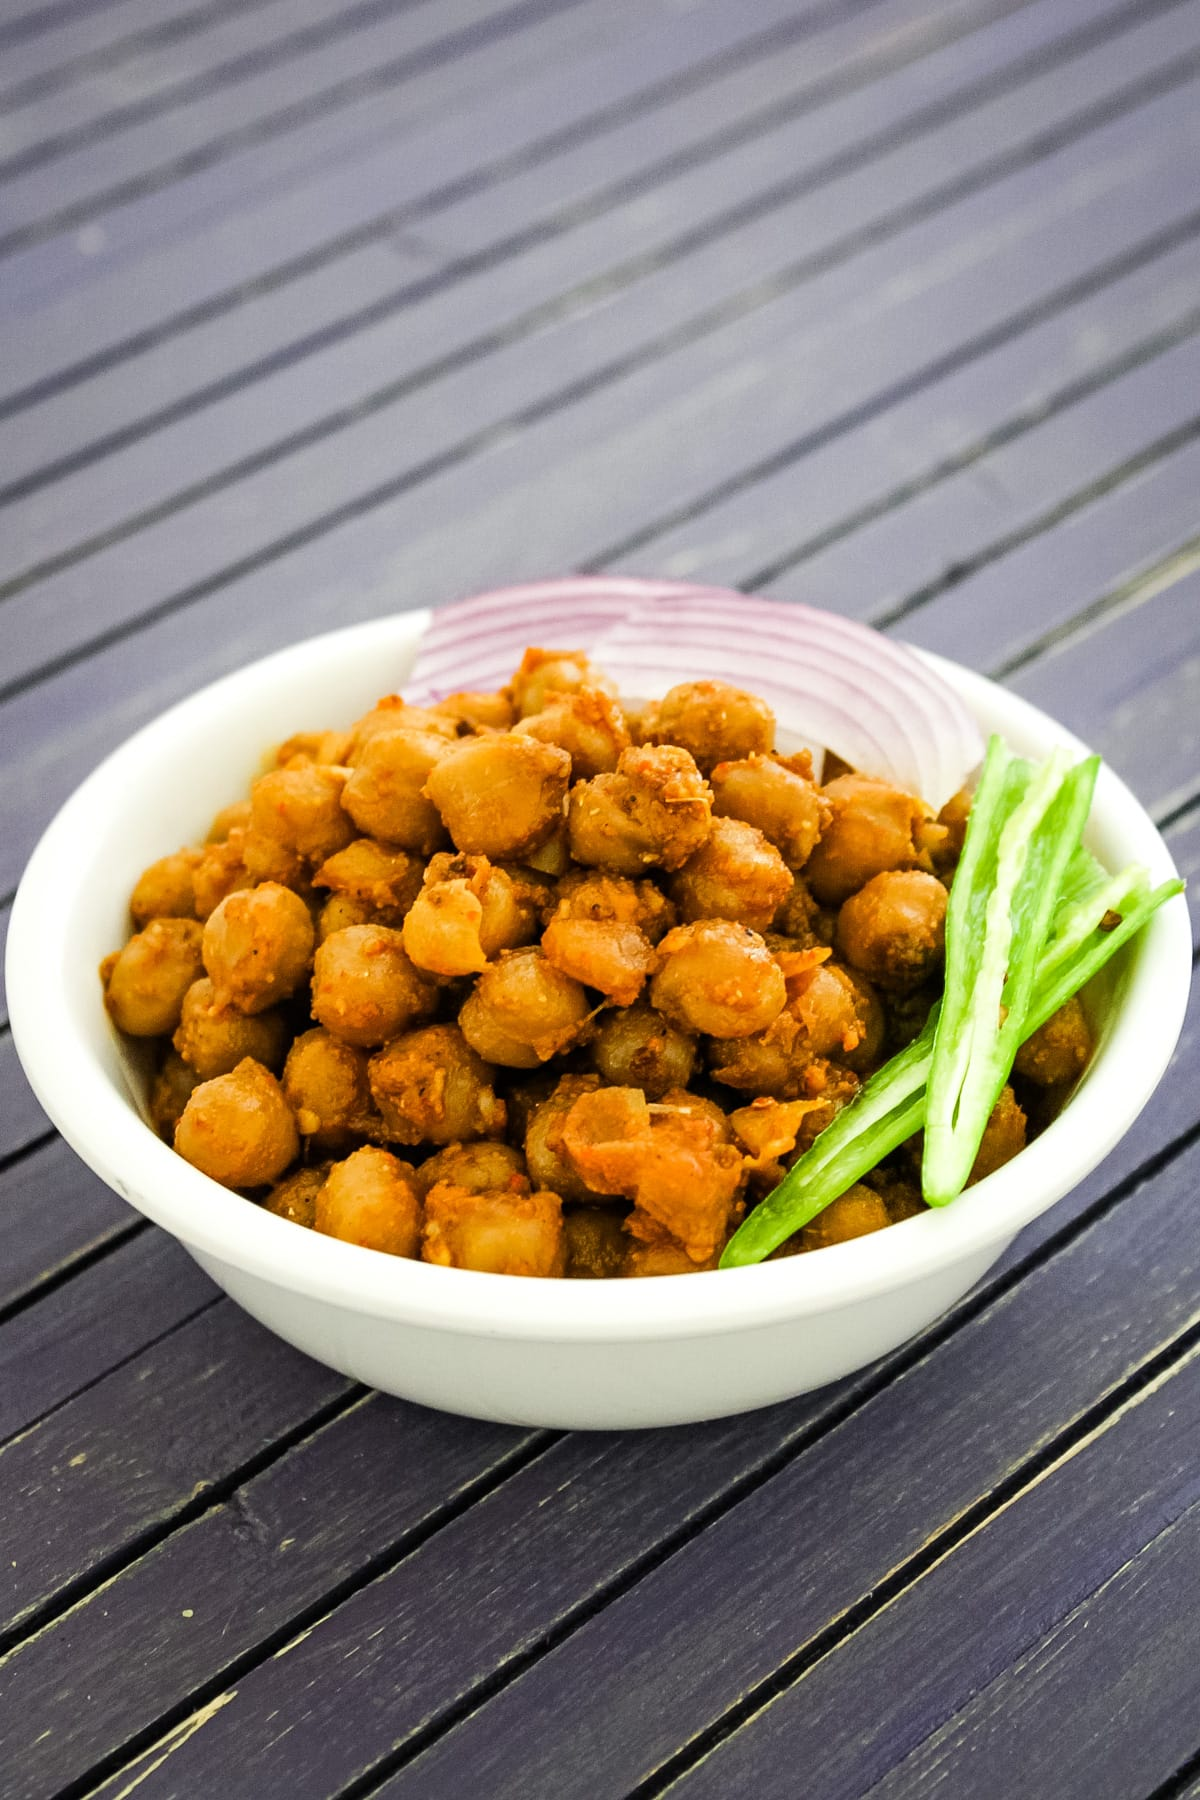 Pindi chole served in a bowl with garnish of green chili and sliced onions.